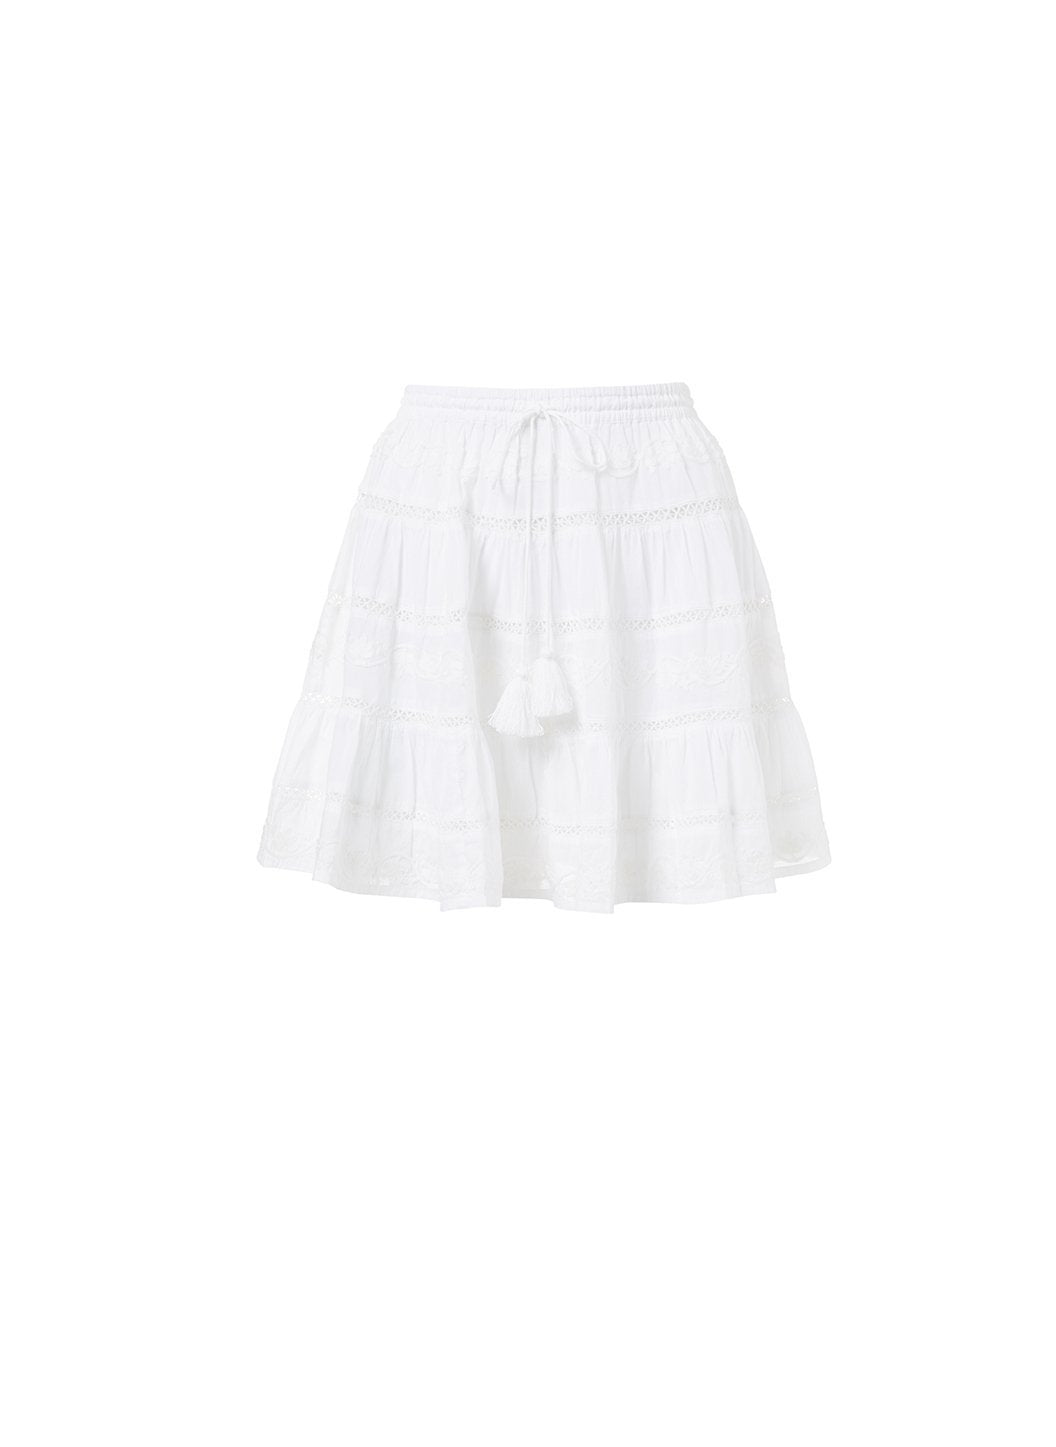 anita white tassle skirt 2019